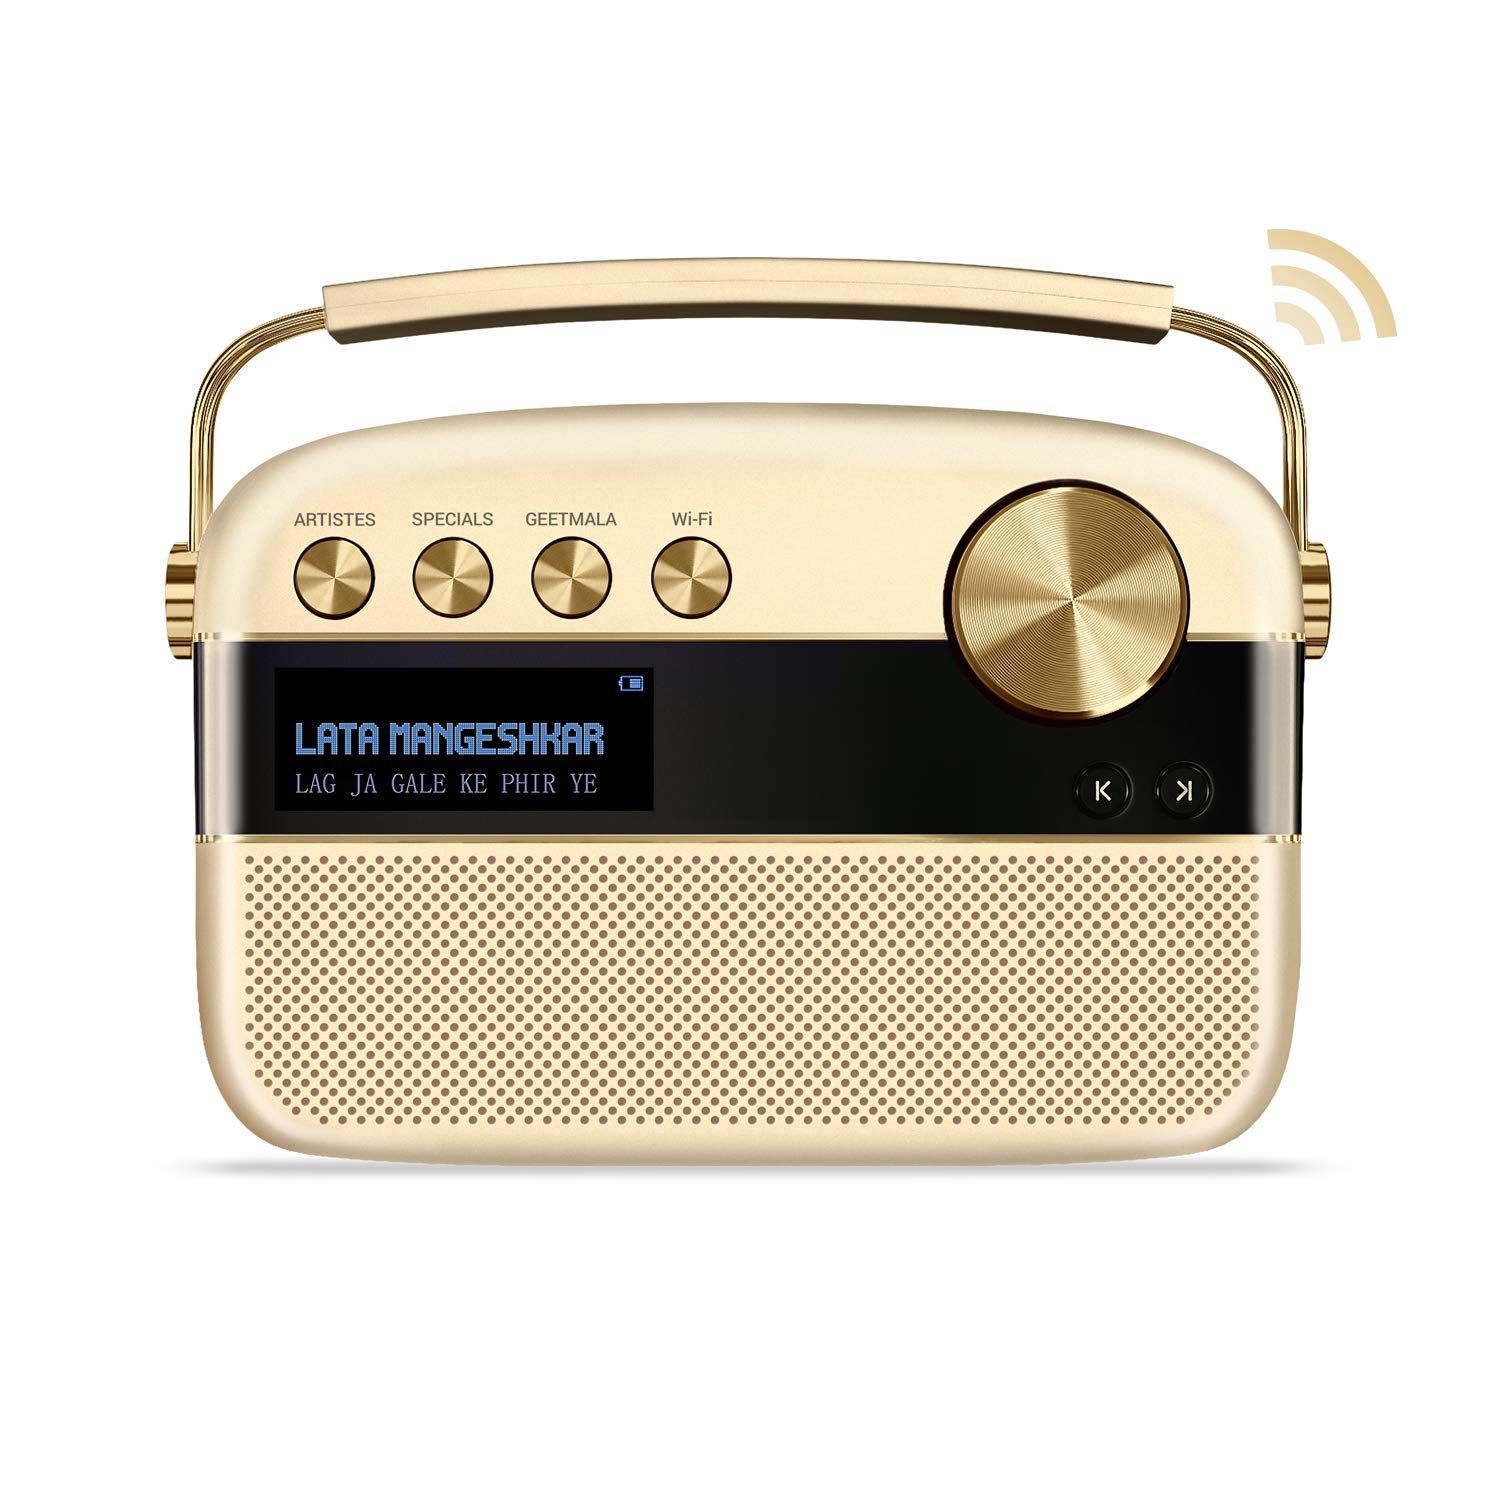 Saregama Carvaan 2.0 Portable Digital Music Player - Sound by Harman/Kardon (with 20,000 Songs) (with WiFi, Champagne Gold Color) by Saregama